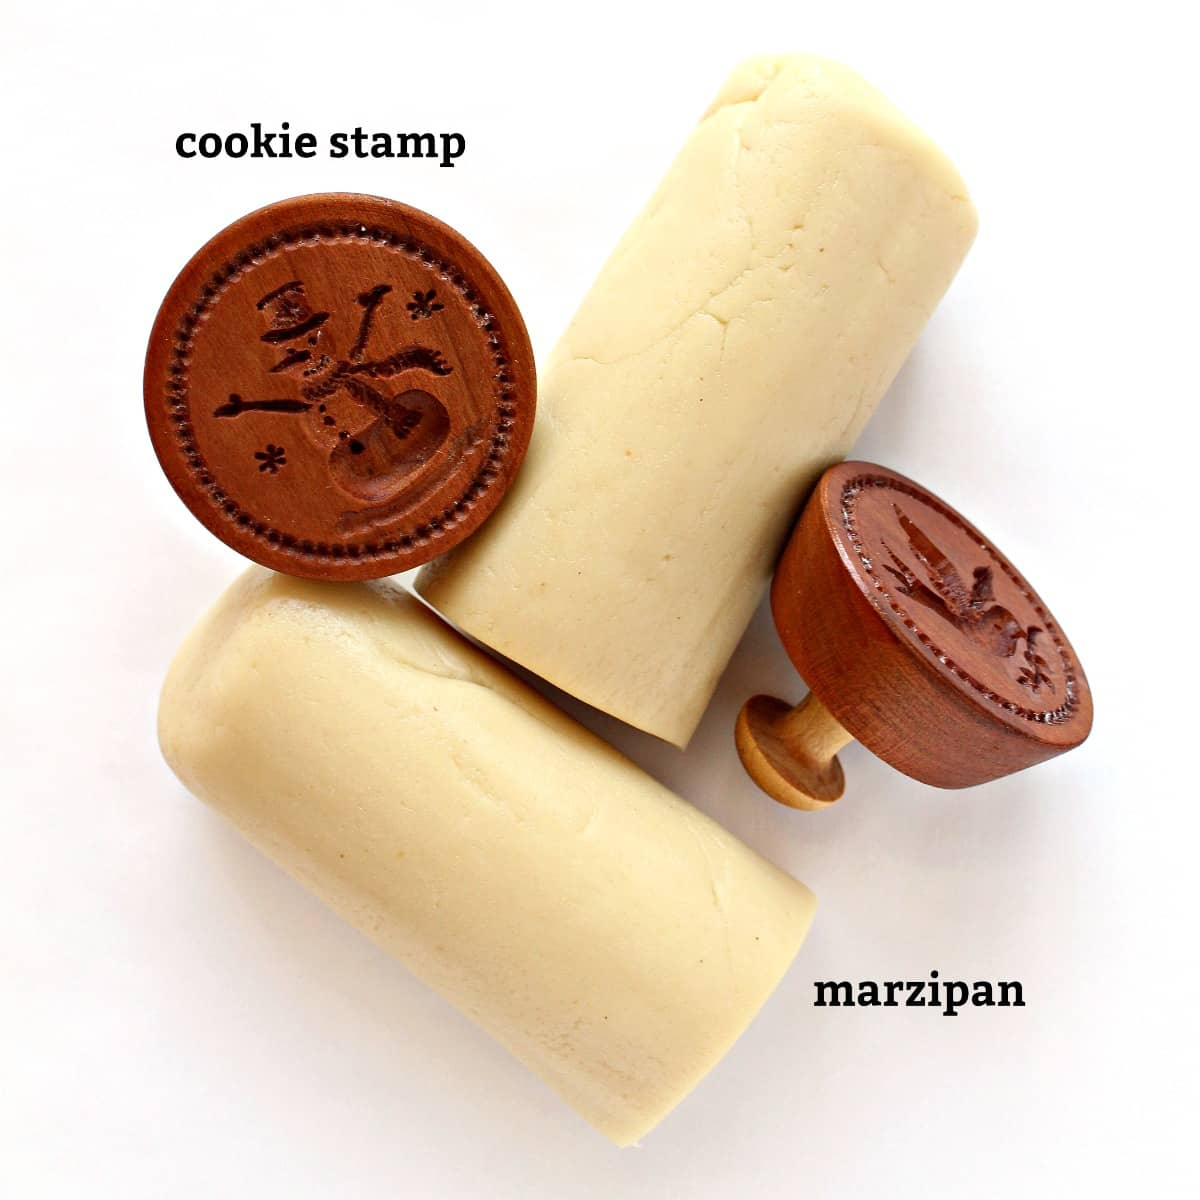 marzipan and cookie stamps with labels